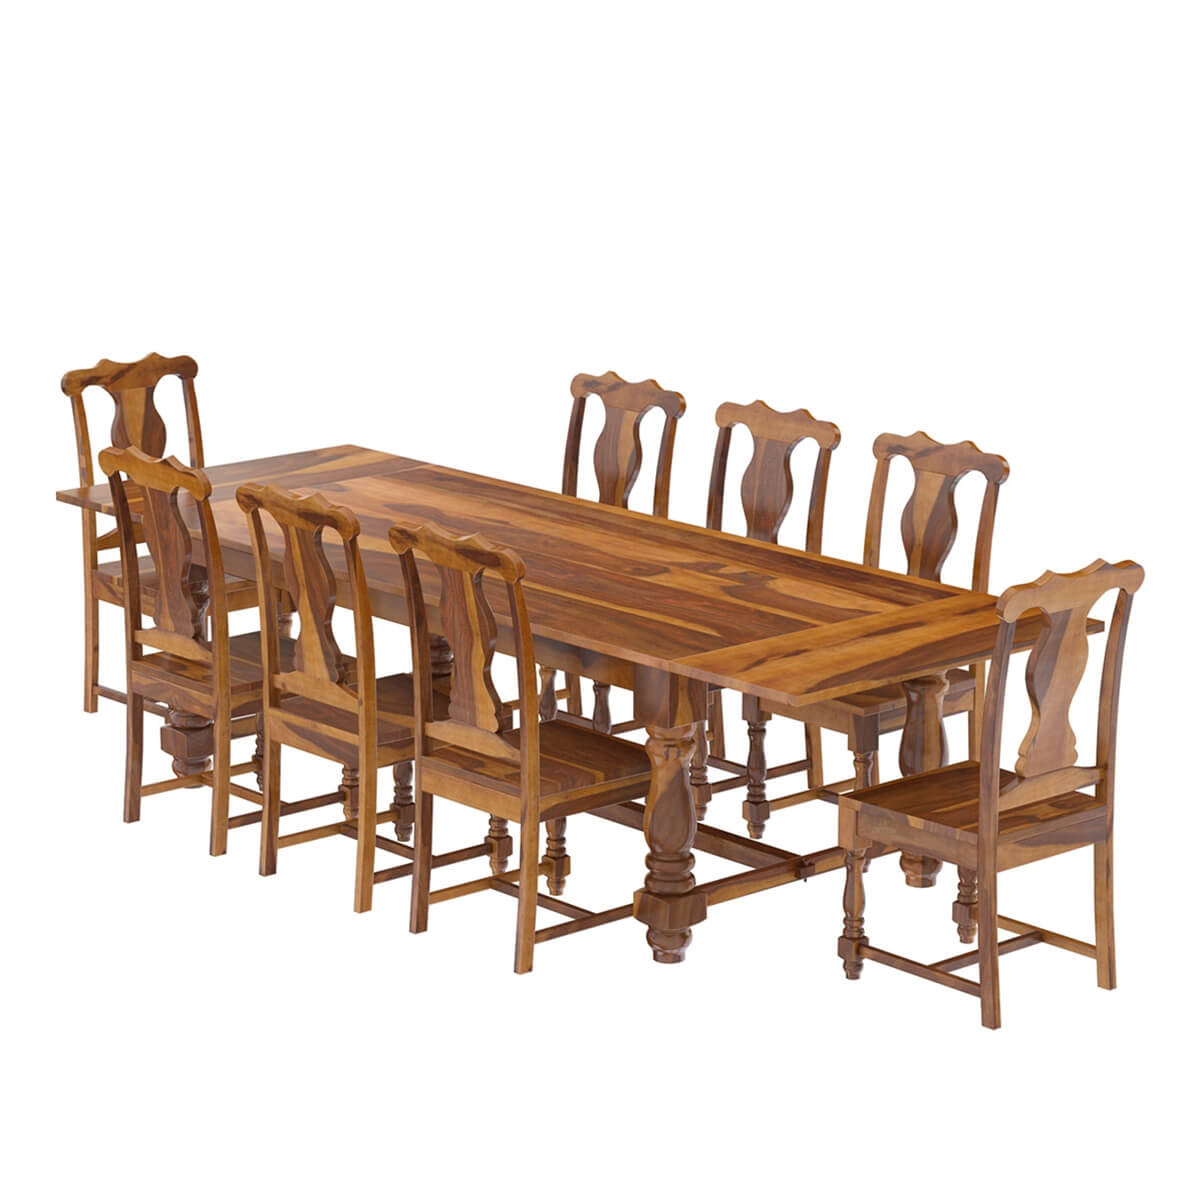 Rustic Solid Wood Dining Table Chair Set Furniture W